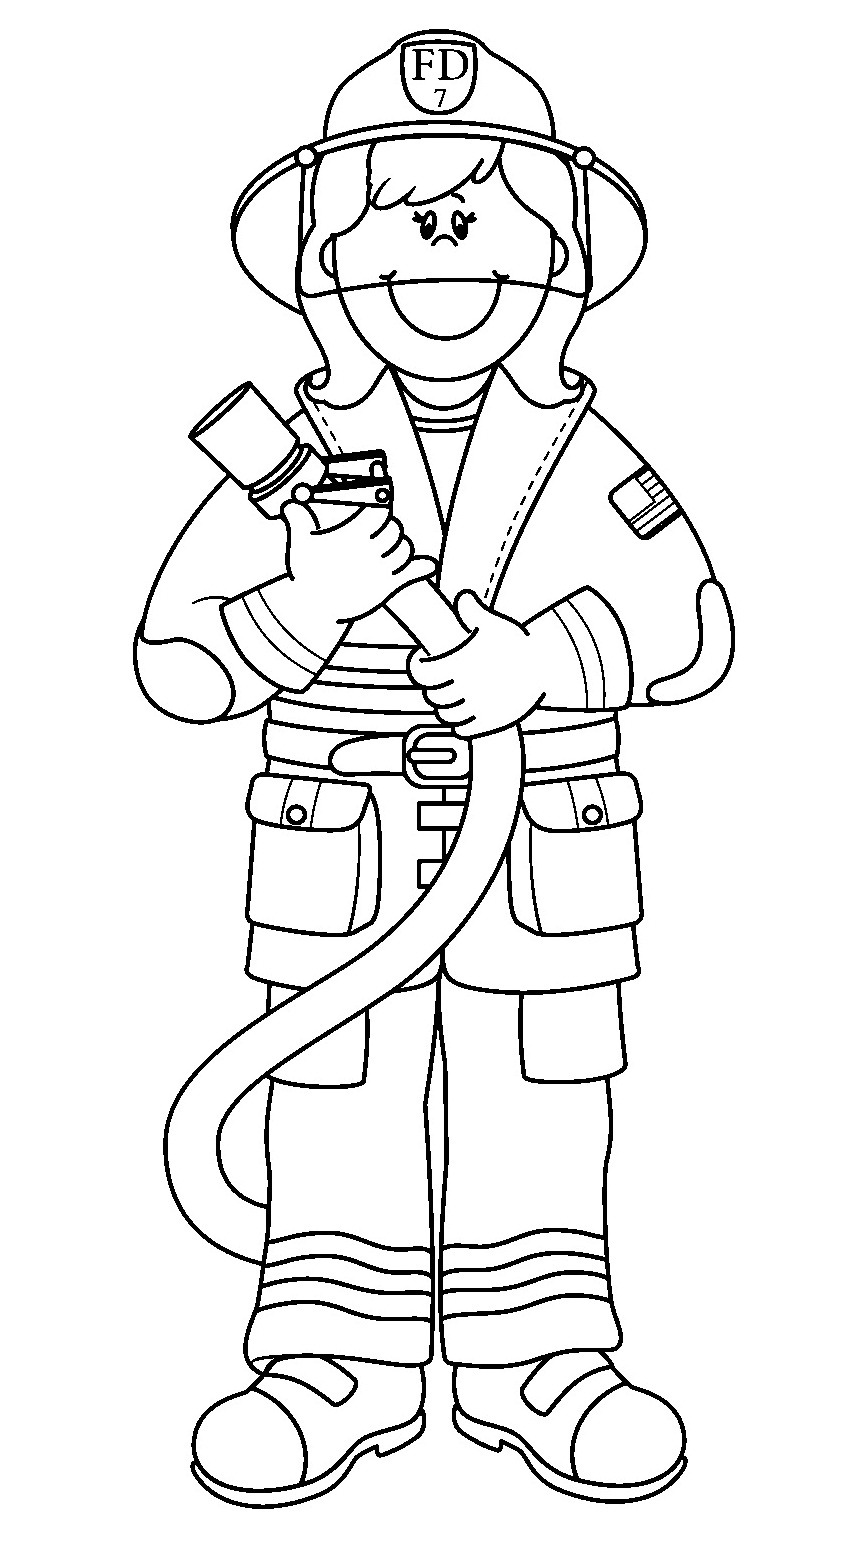 firefighter coloring pages printable the gallery for firefighter drawings for kids